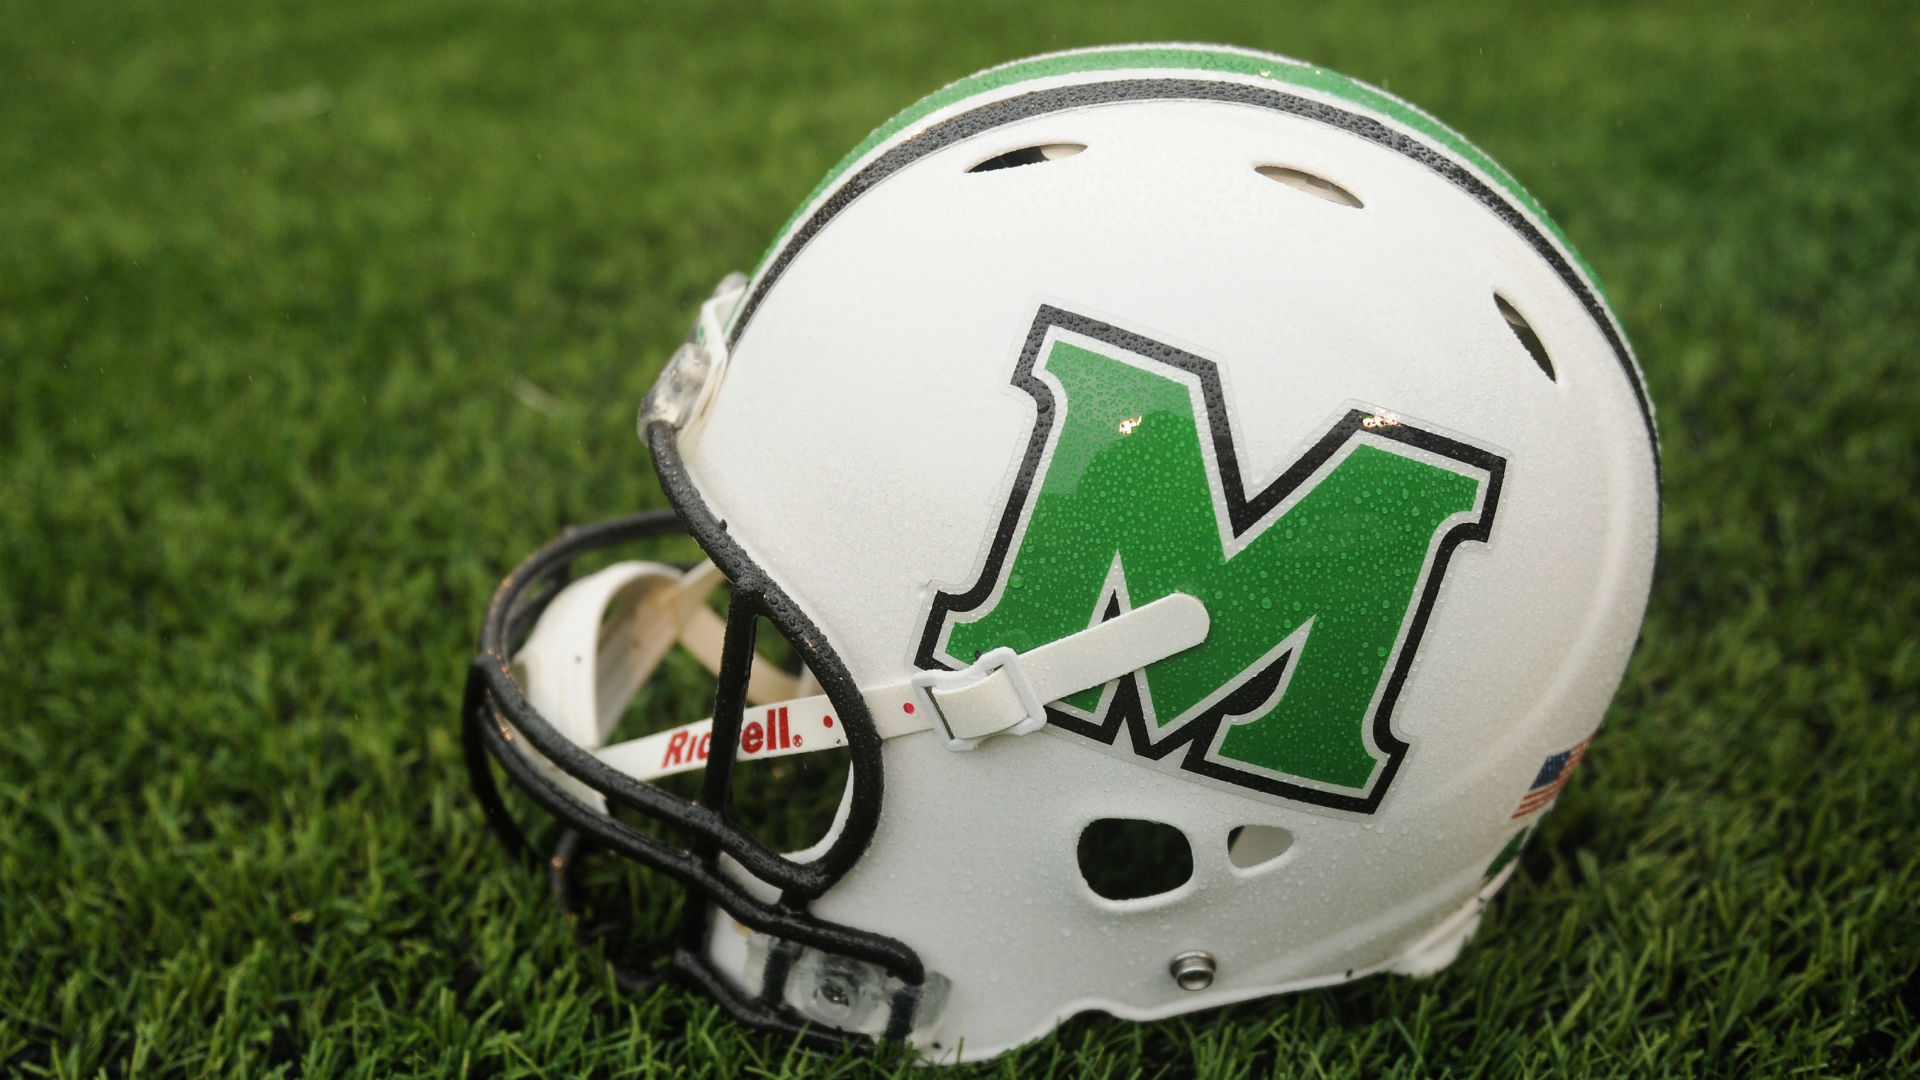 Marshall football player dies at 19 years old from gunshot wound complications